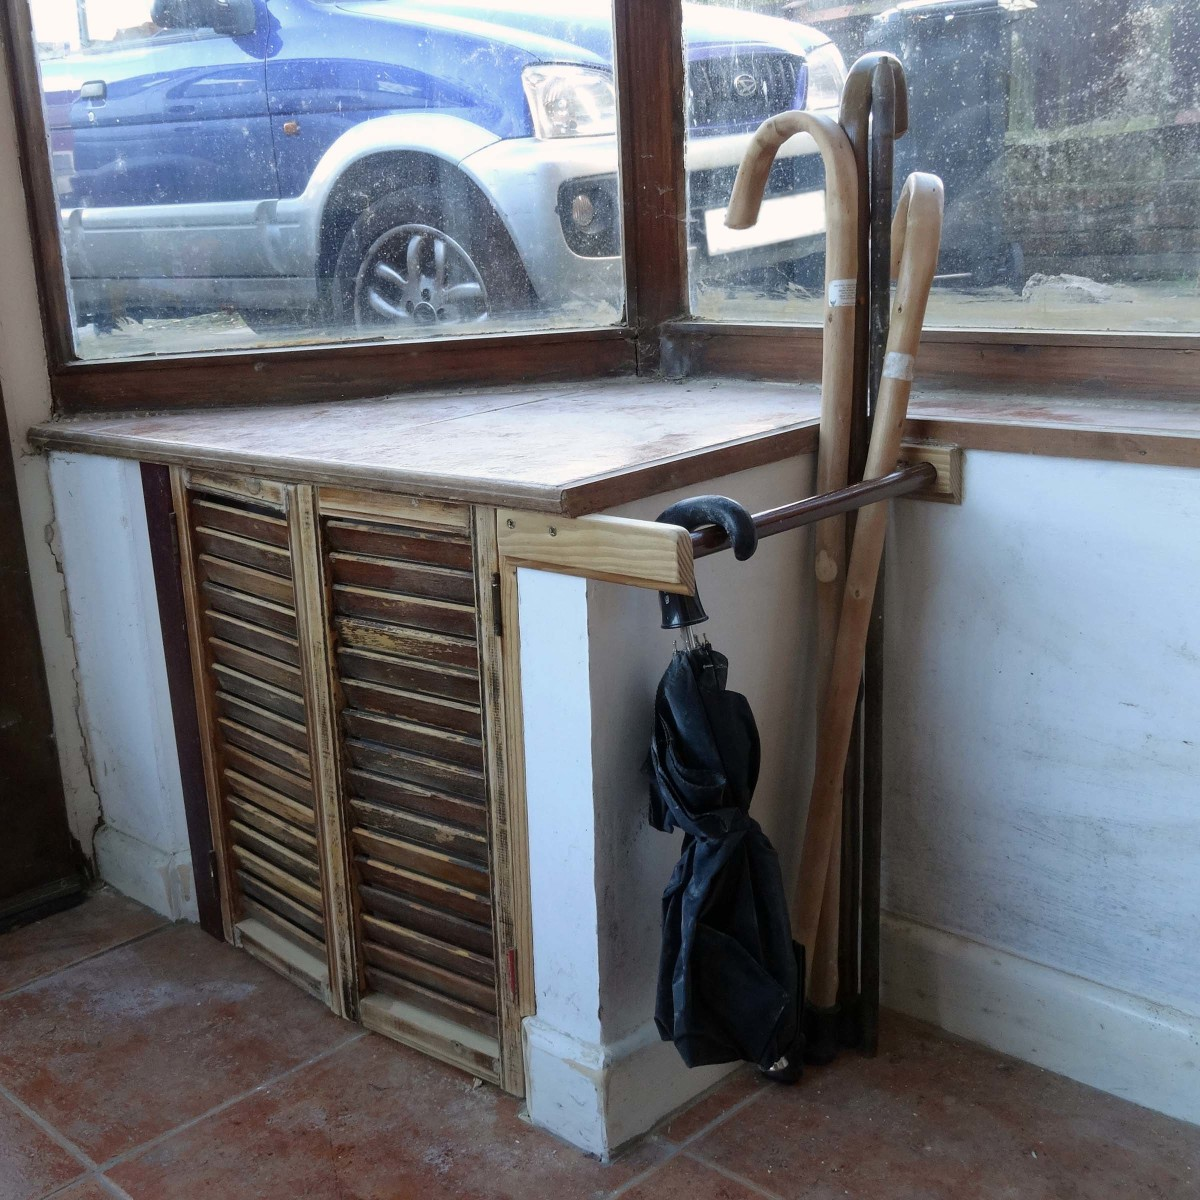 How to make a simple walking stick and umbrella rack